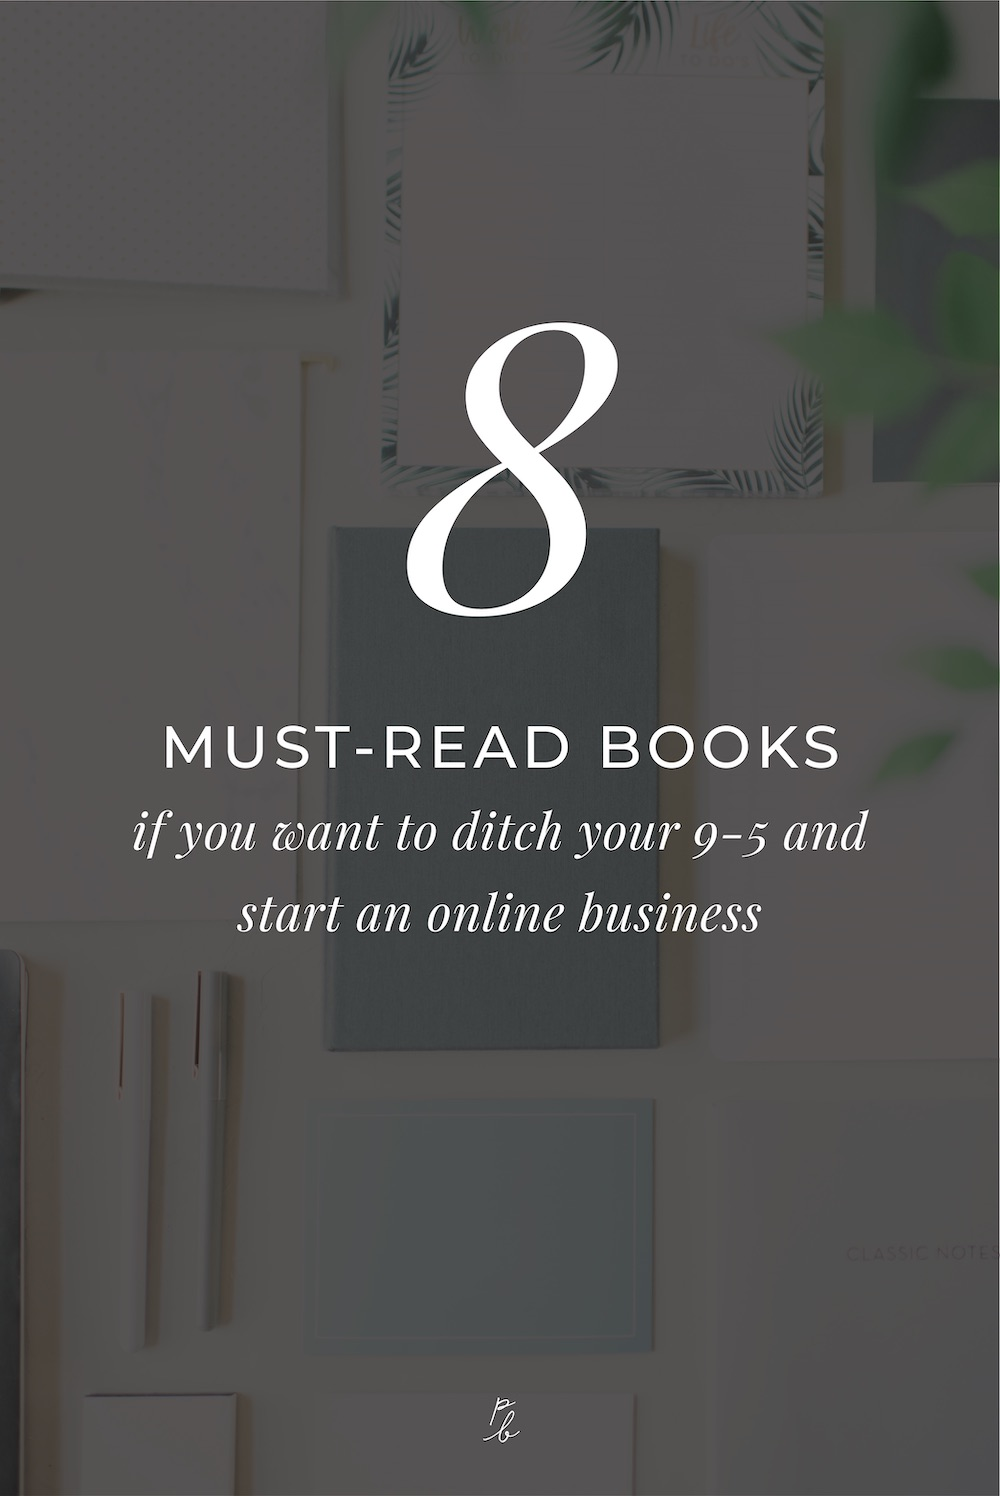 2- 8 must read books if you want to ditch your 9-5 and start an online business.jpg